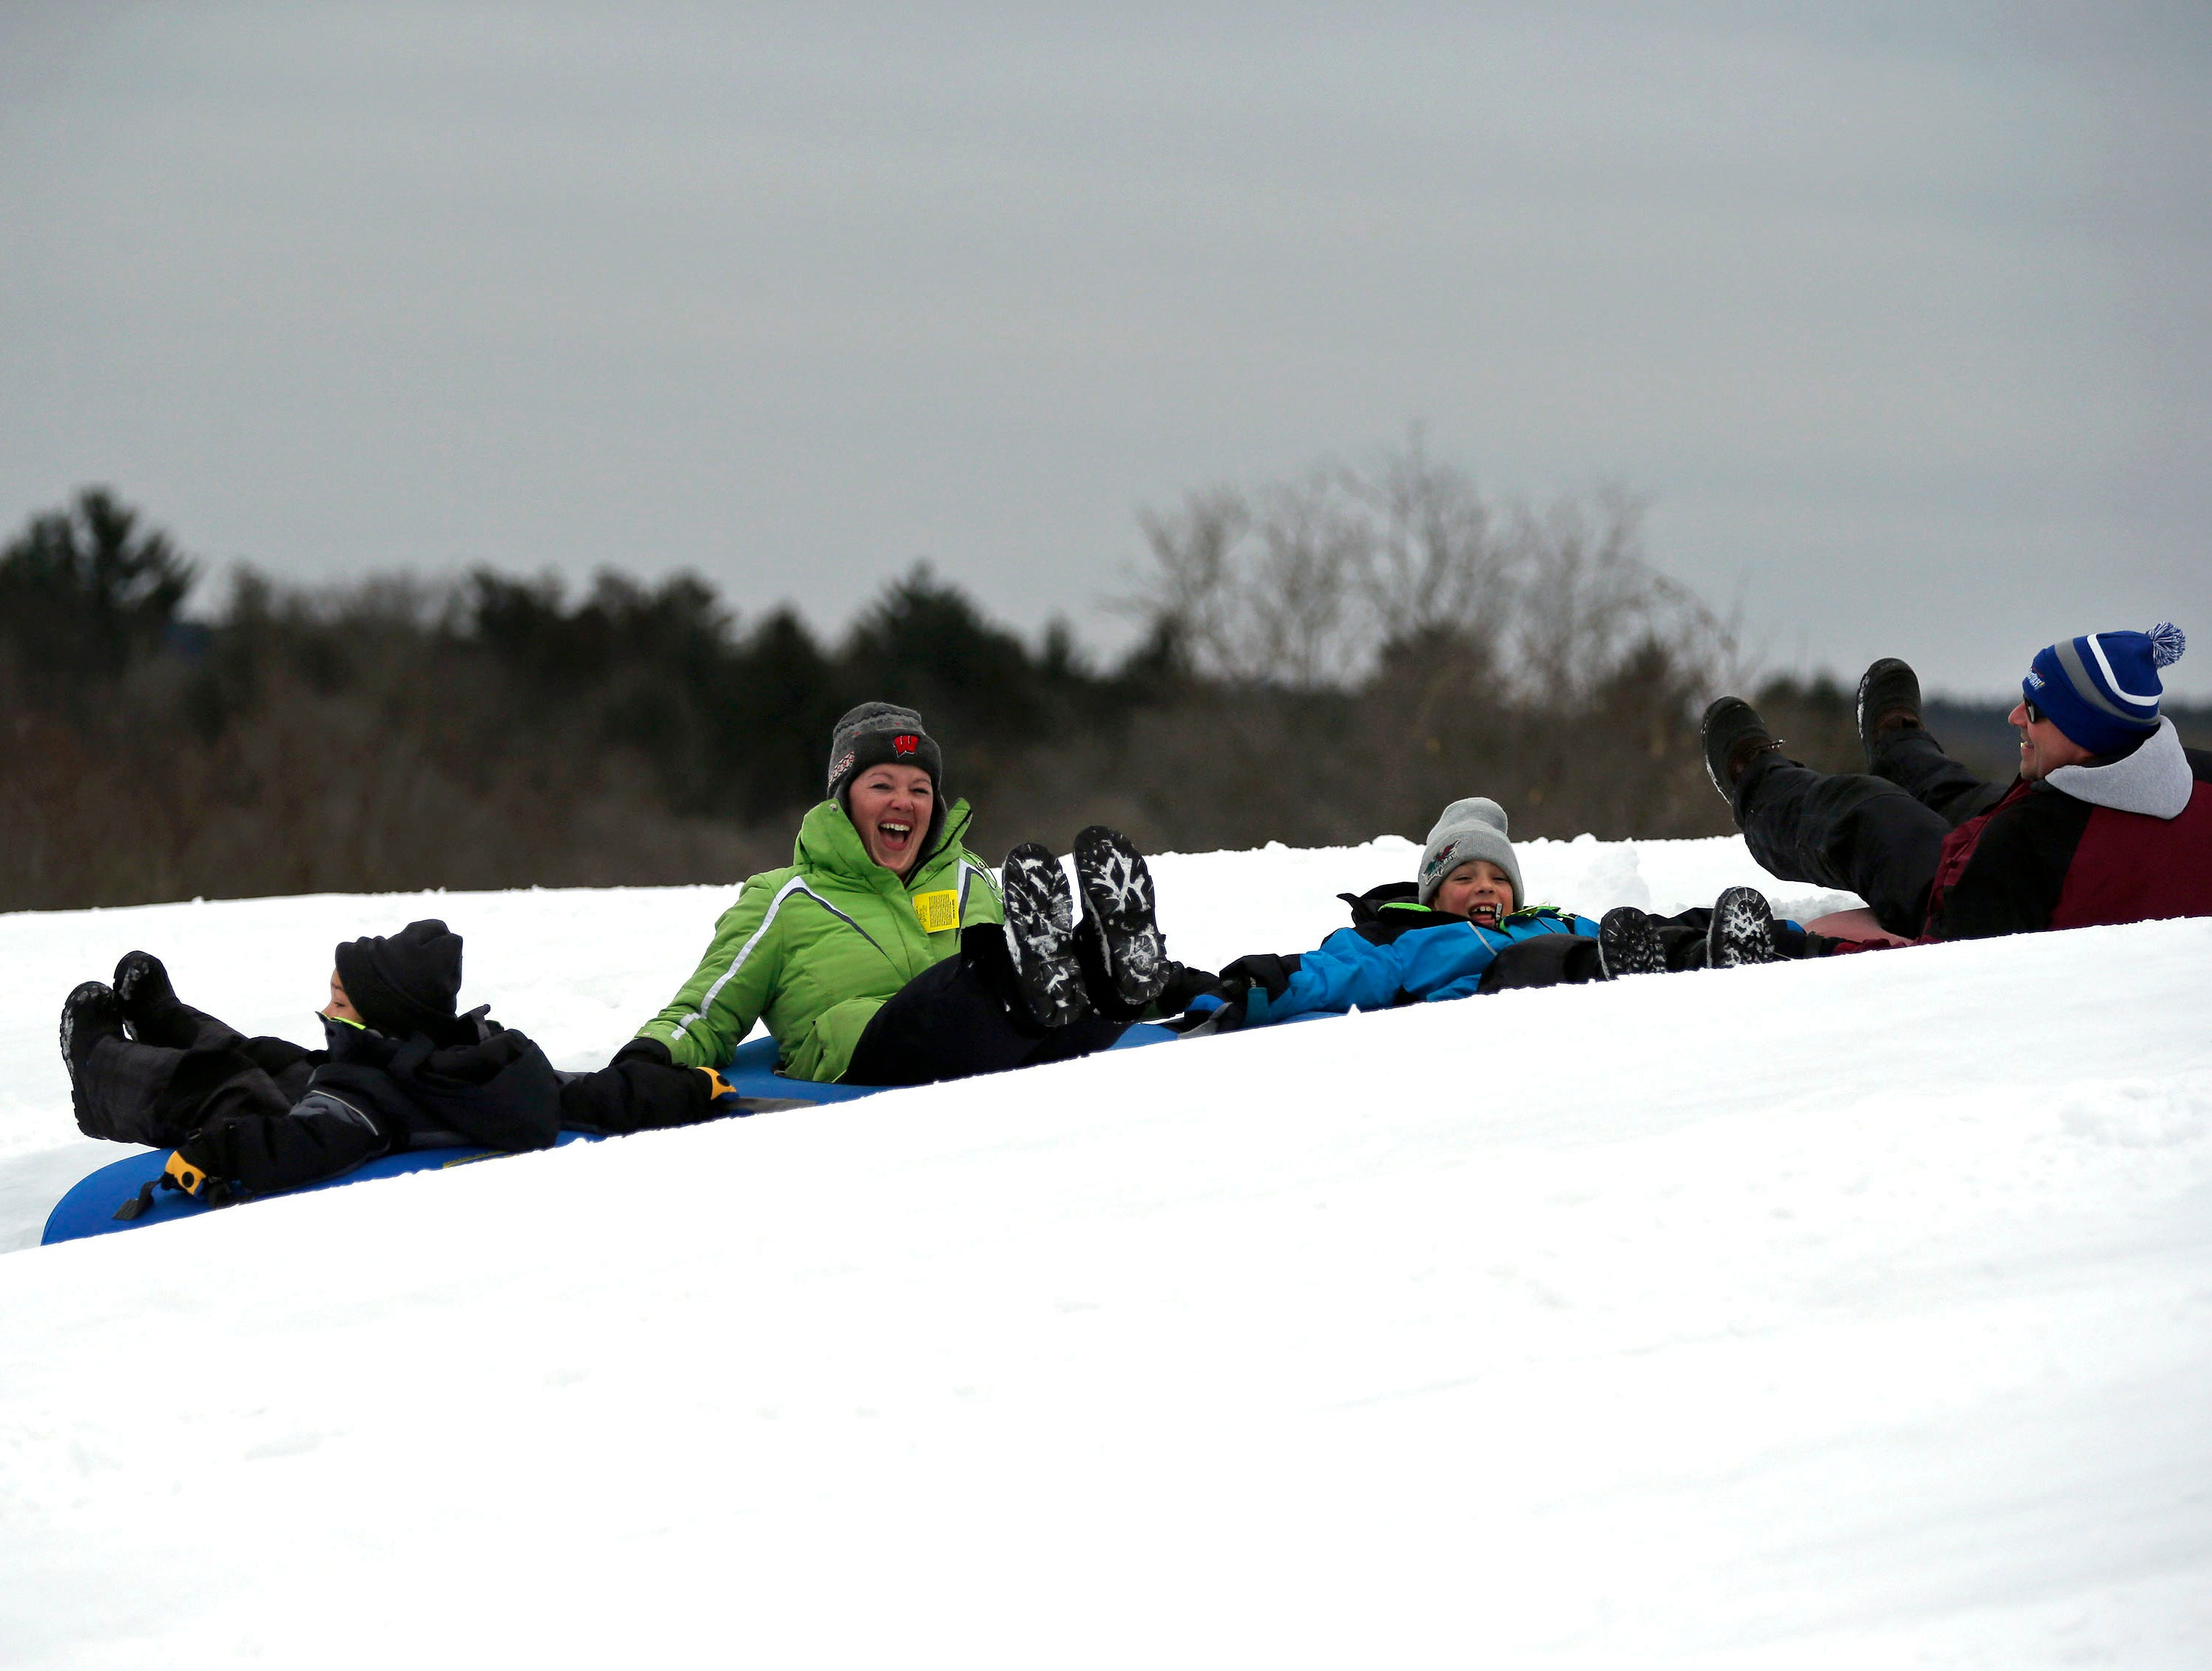 Jamie Kuklinski of Green Bay has a laugh on her ride down the hill as a mild winter day brings tubing fans to Nordic Mountain Sunday, January 13, 2019, near Wild Rose, Wis.